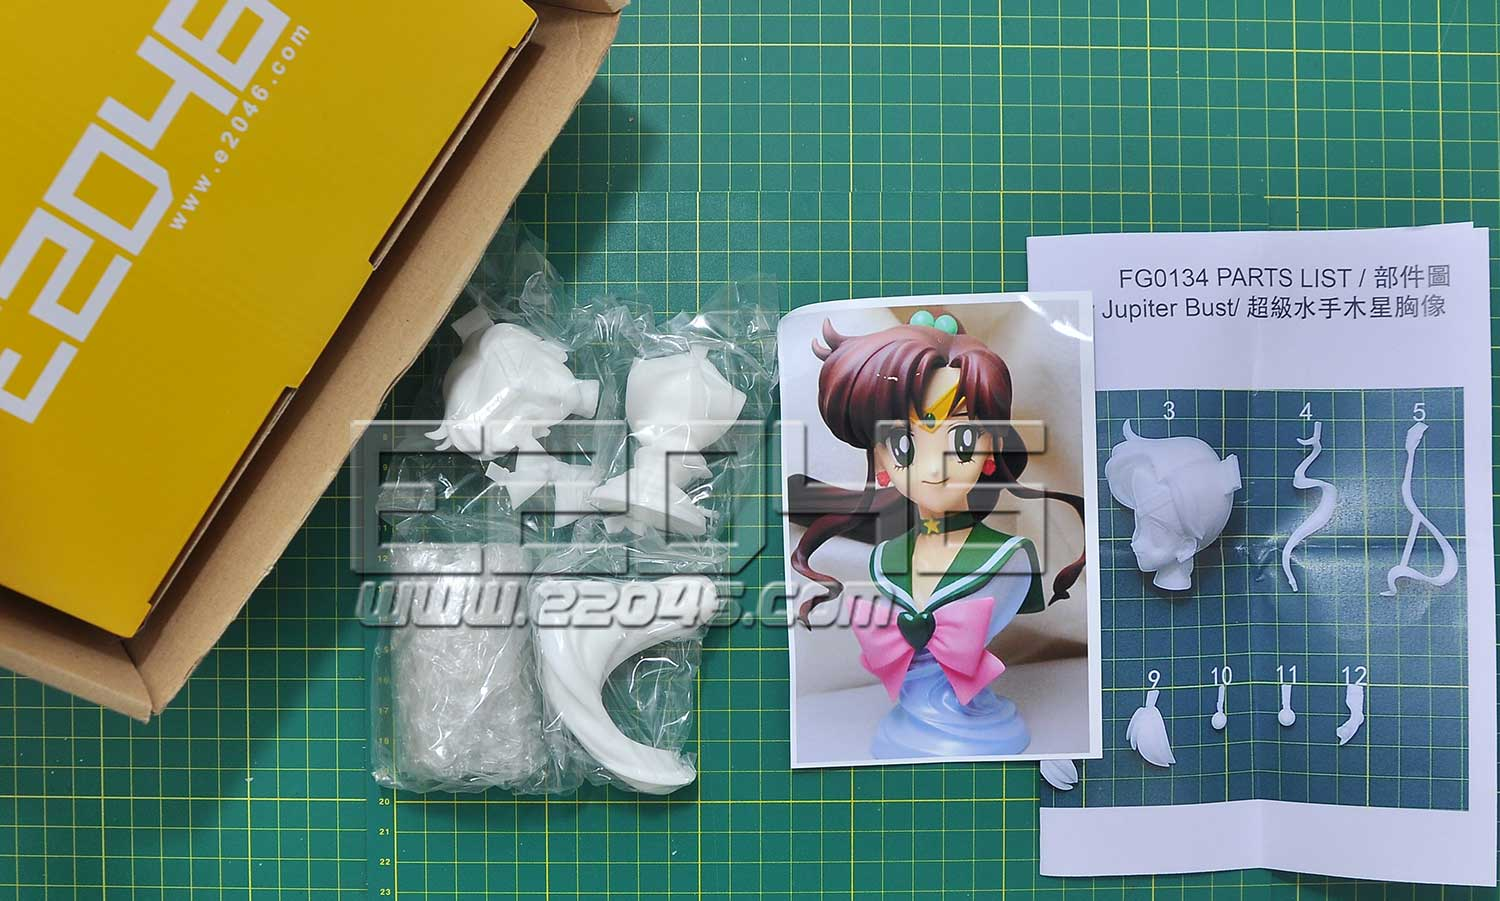 Super Sailor Jupiter Bust